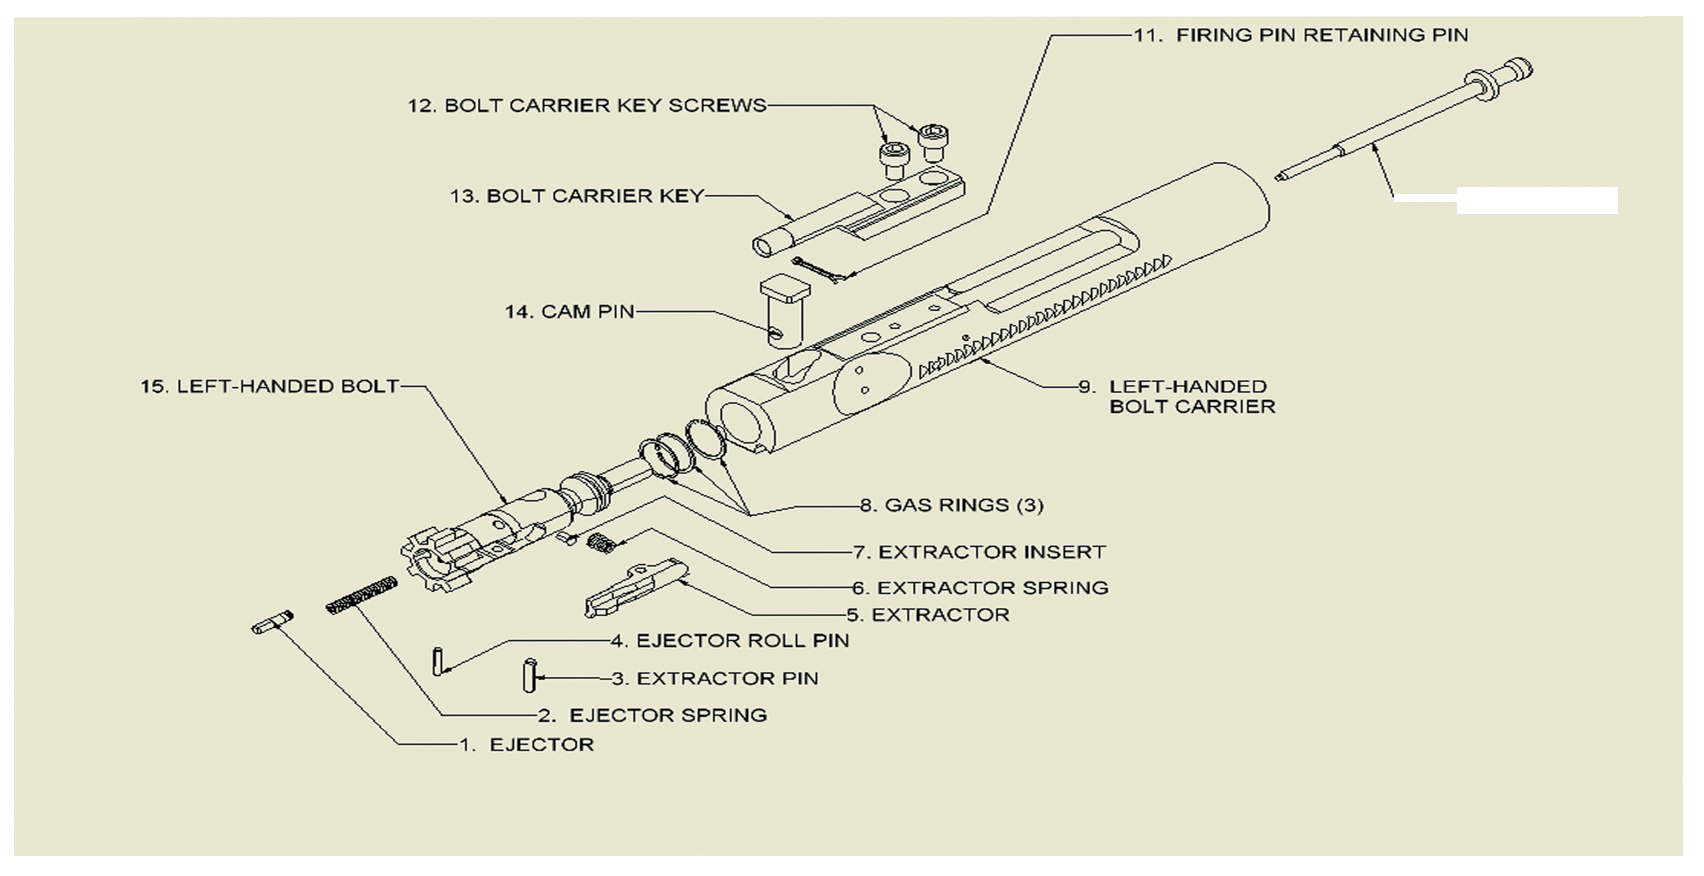 1911 Receiver Parts Diagram Electrical Wiring Kimber Bolt Carrier Arms East Ar15 Canada Online Shopping Exploded Breakdown